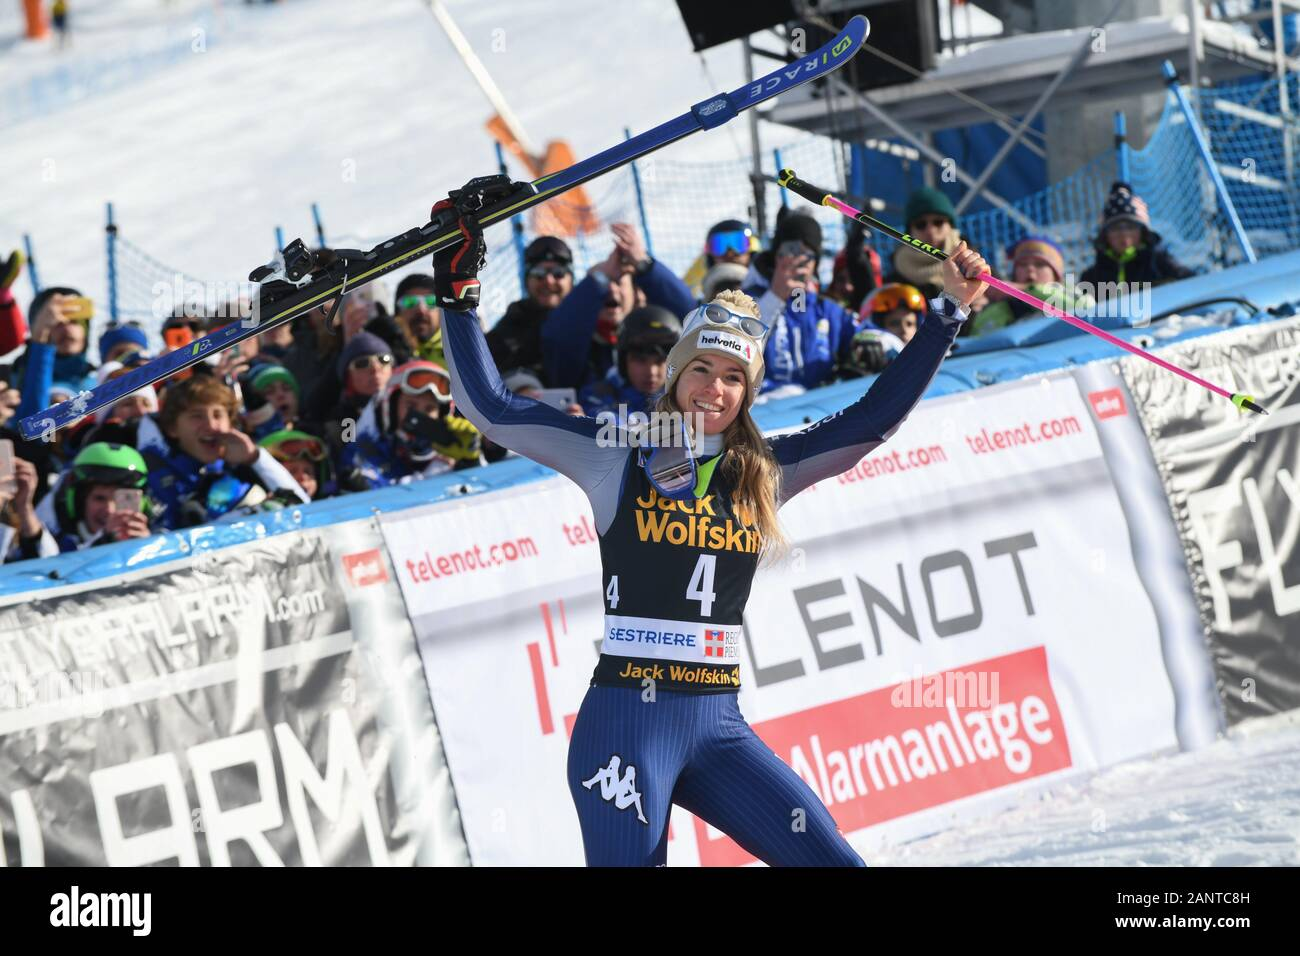 Sestriere, Italy, 19 Jan 2020, bassino marta (ita) 3th classified during SKY World Cup -  Parallel Giant Slalom Women - Ski - Credit: LPS/Danilo Vigo/Alamy Live News Stock Photo